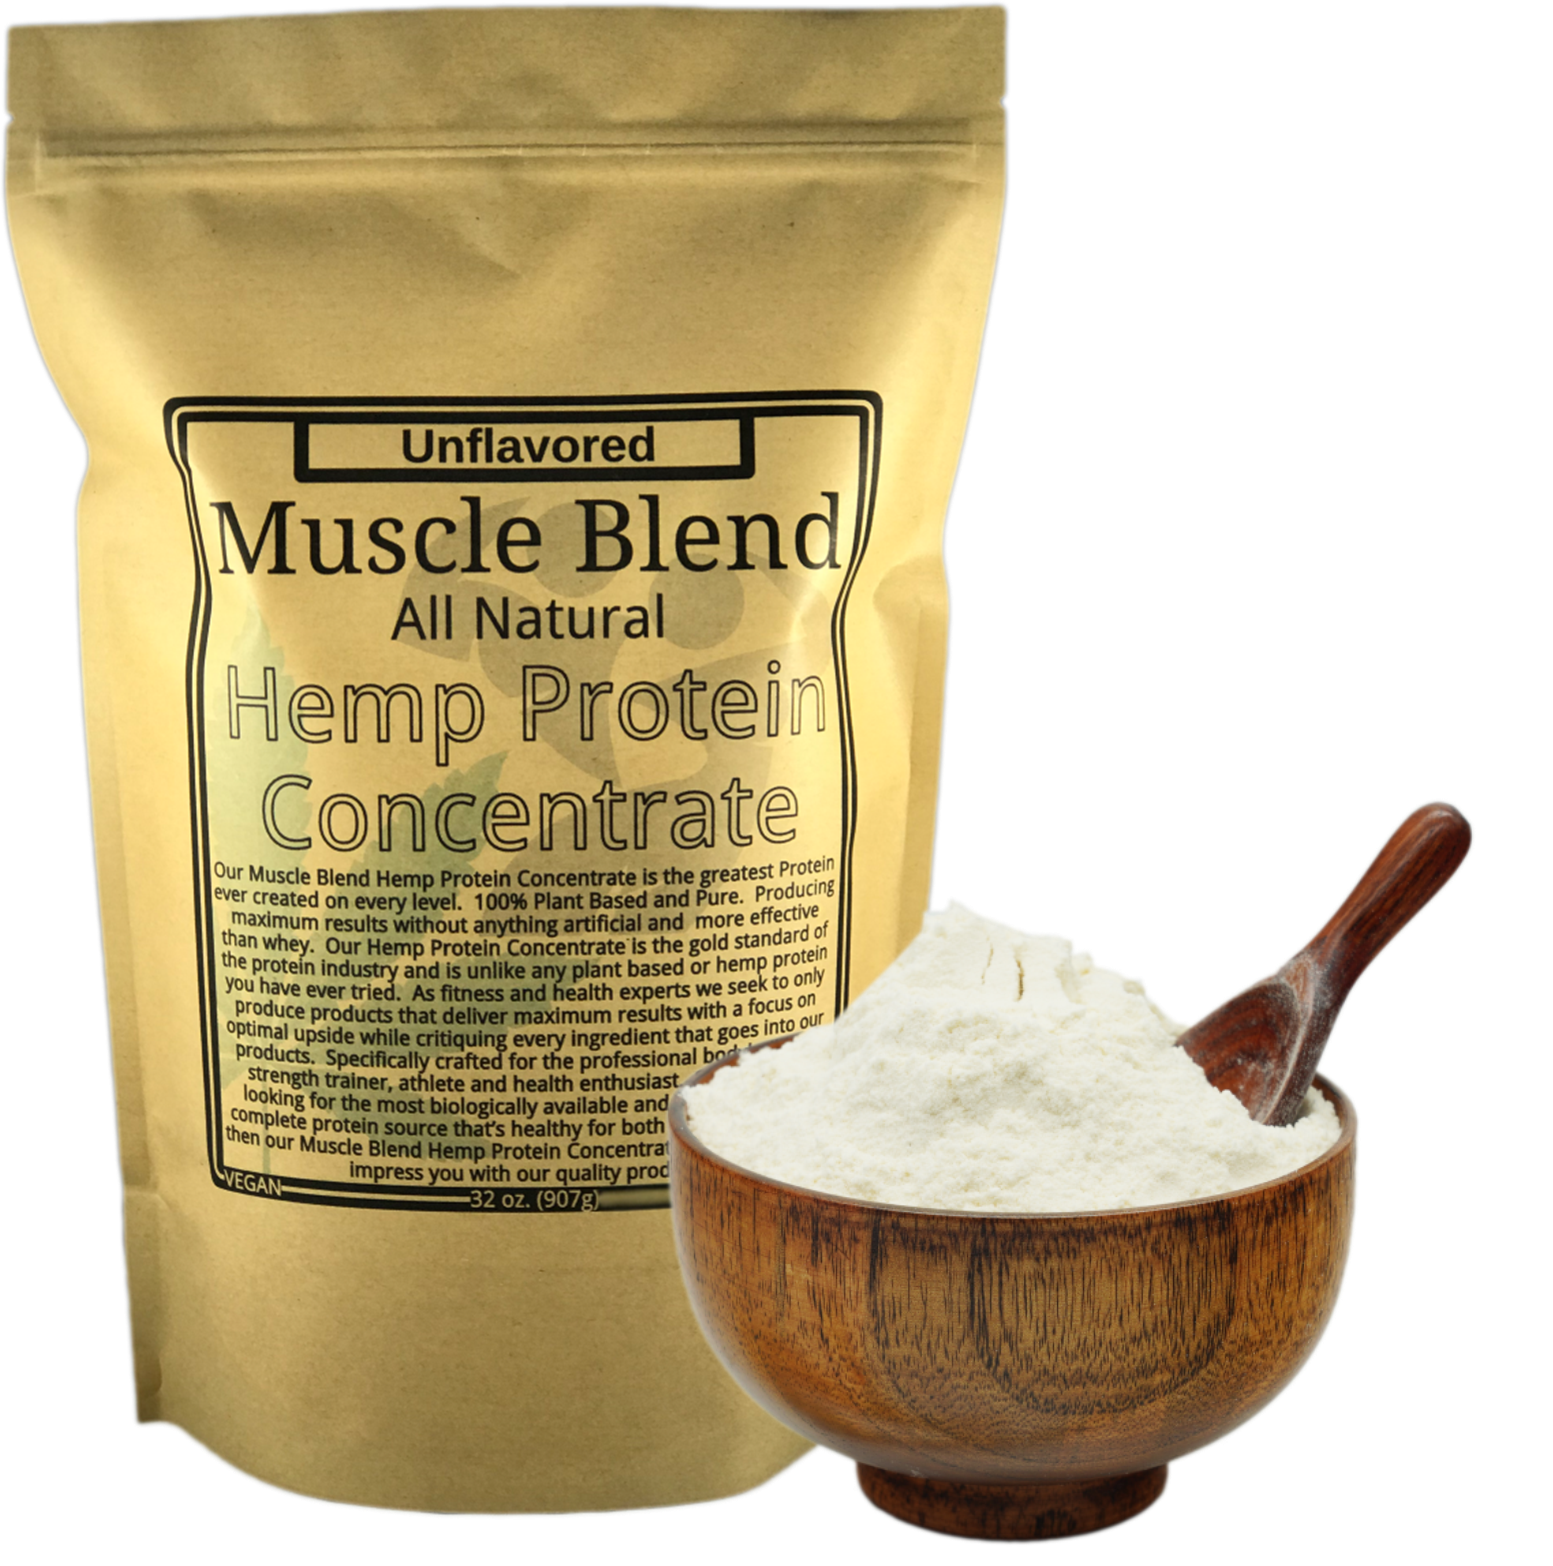 Muscle Blend RAW Hemp Protein 70% Concentrate, 32 oz, Plain, Non-GMO, USA